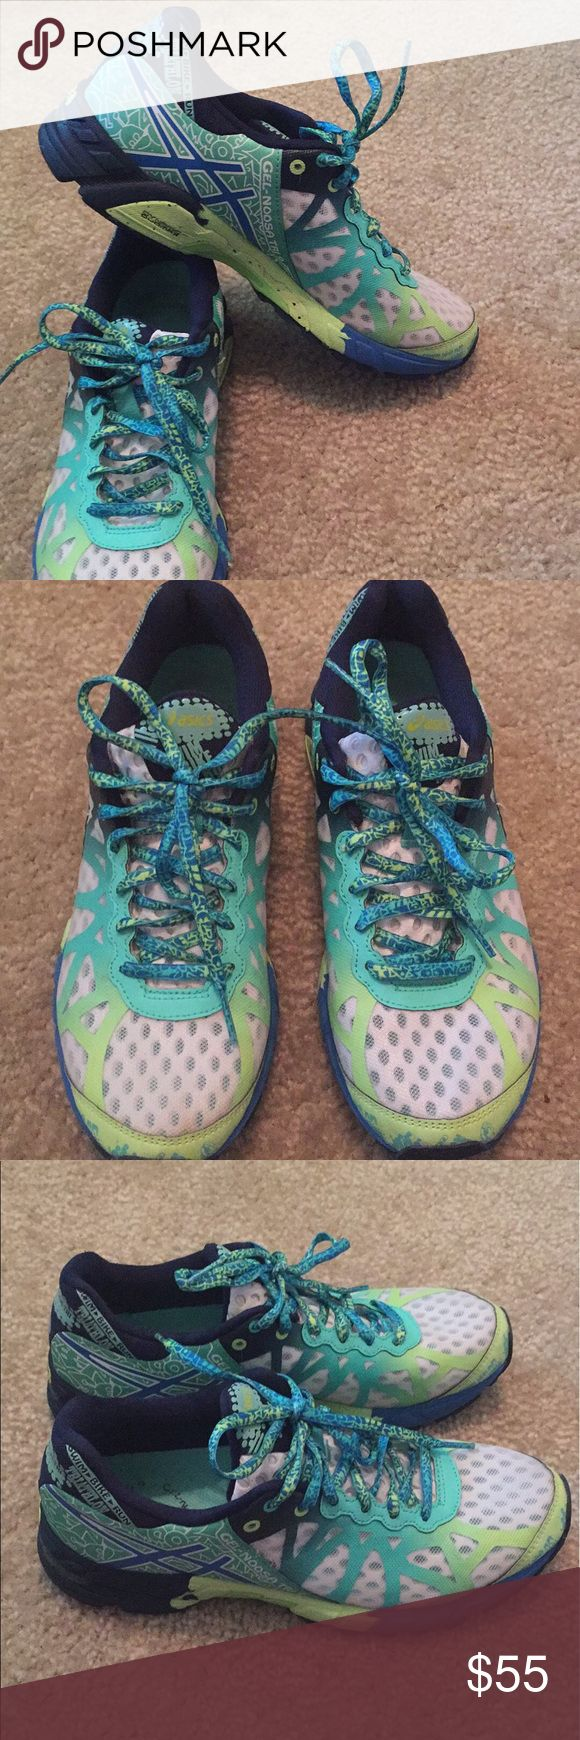 Asics Gel Noosa Triathlon Great shoes but too small!   Great condition! Asics Shoes